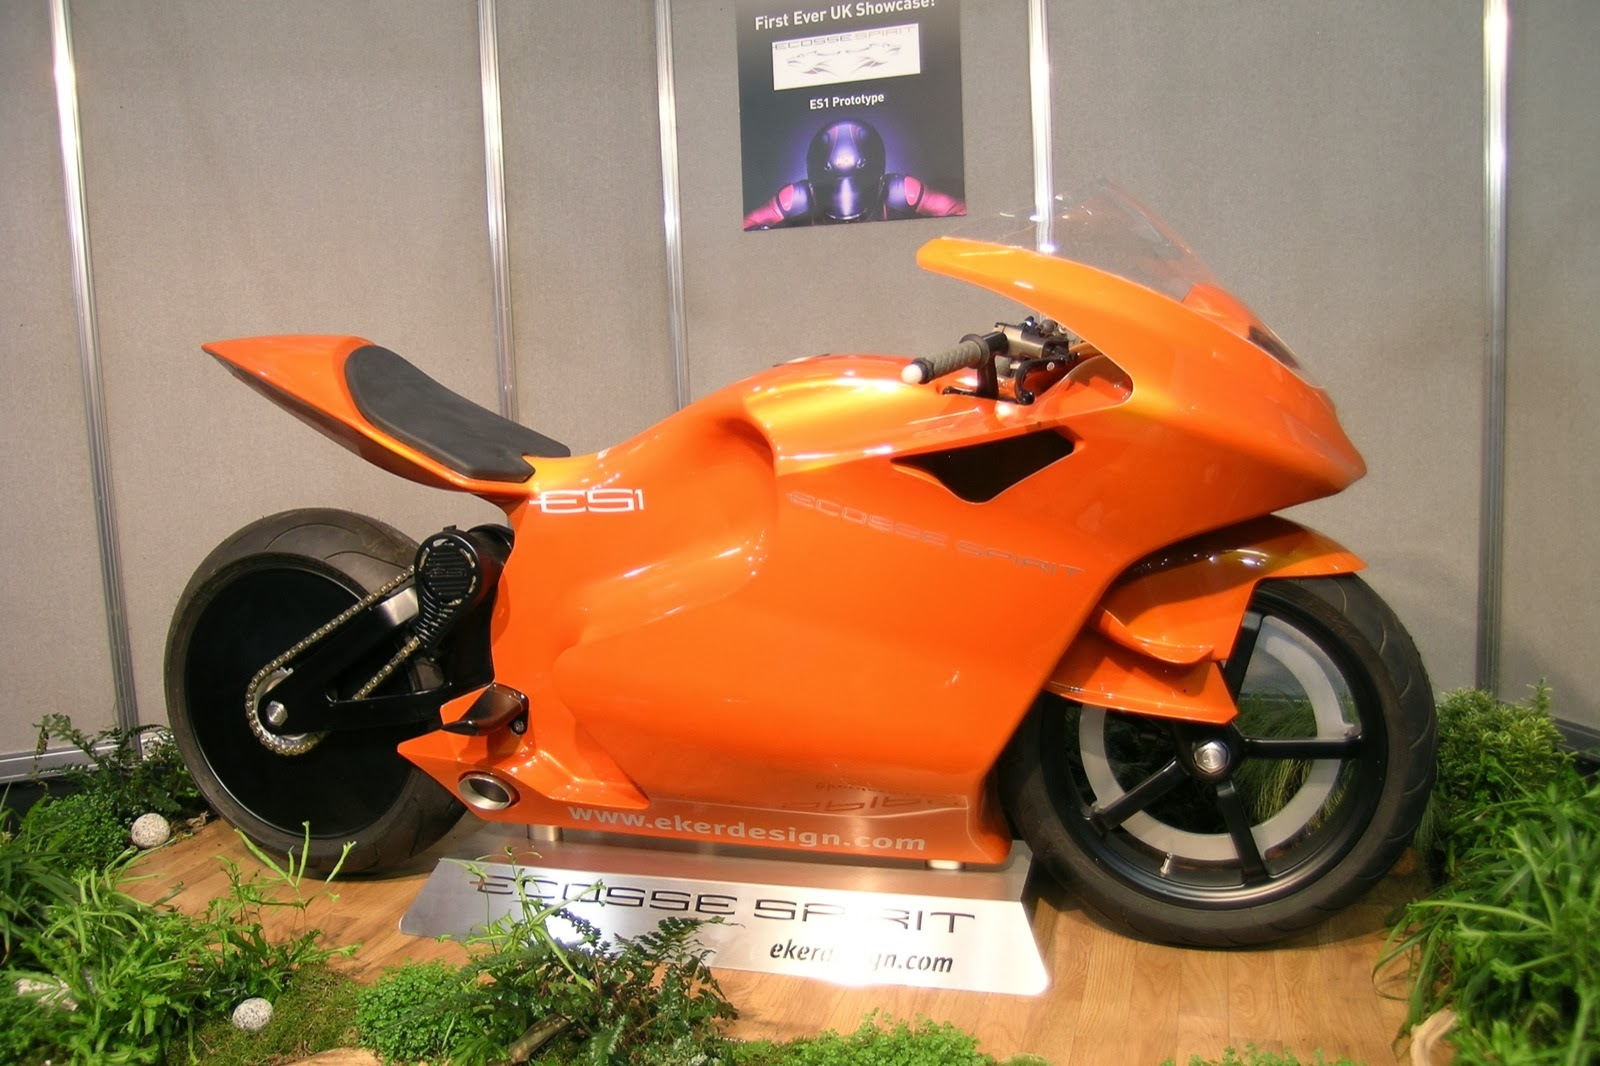 ecosse-spirit-3600000_expensive-motorcycles